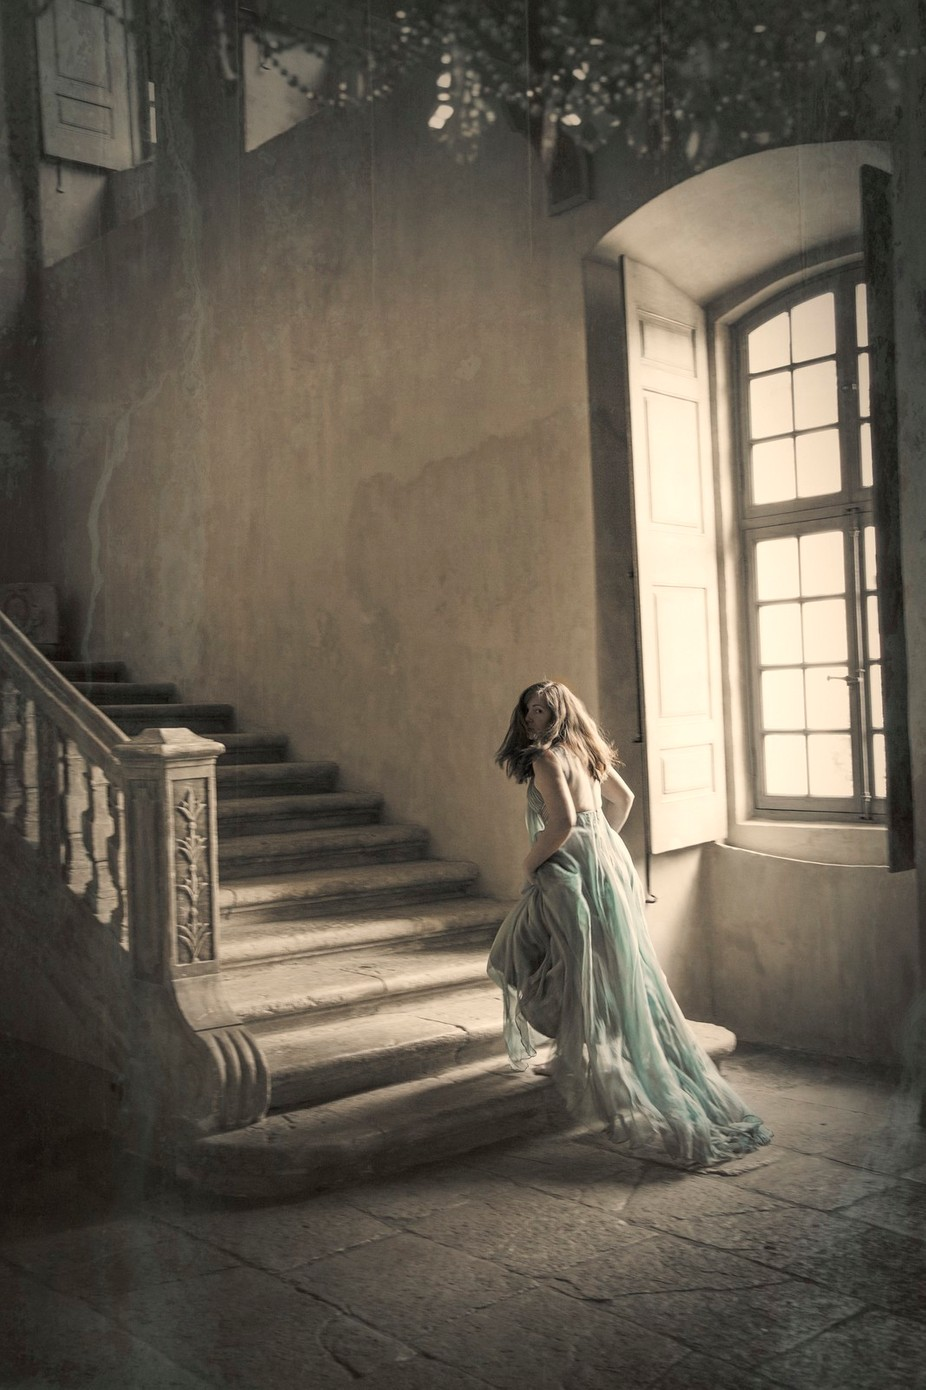 A Girl In The Castle by YouAreHereToRiskYourHeart - Elegant Photo Contest